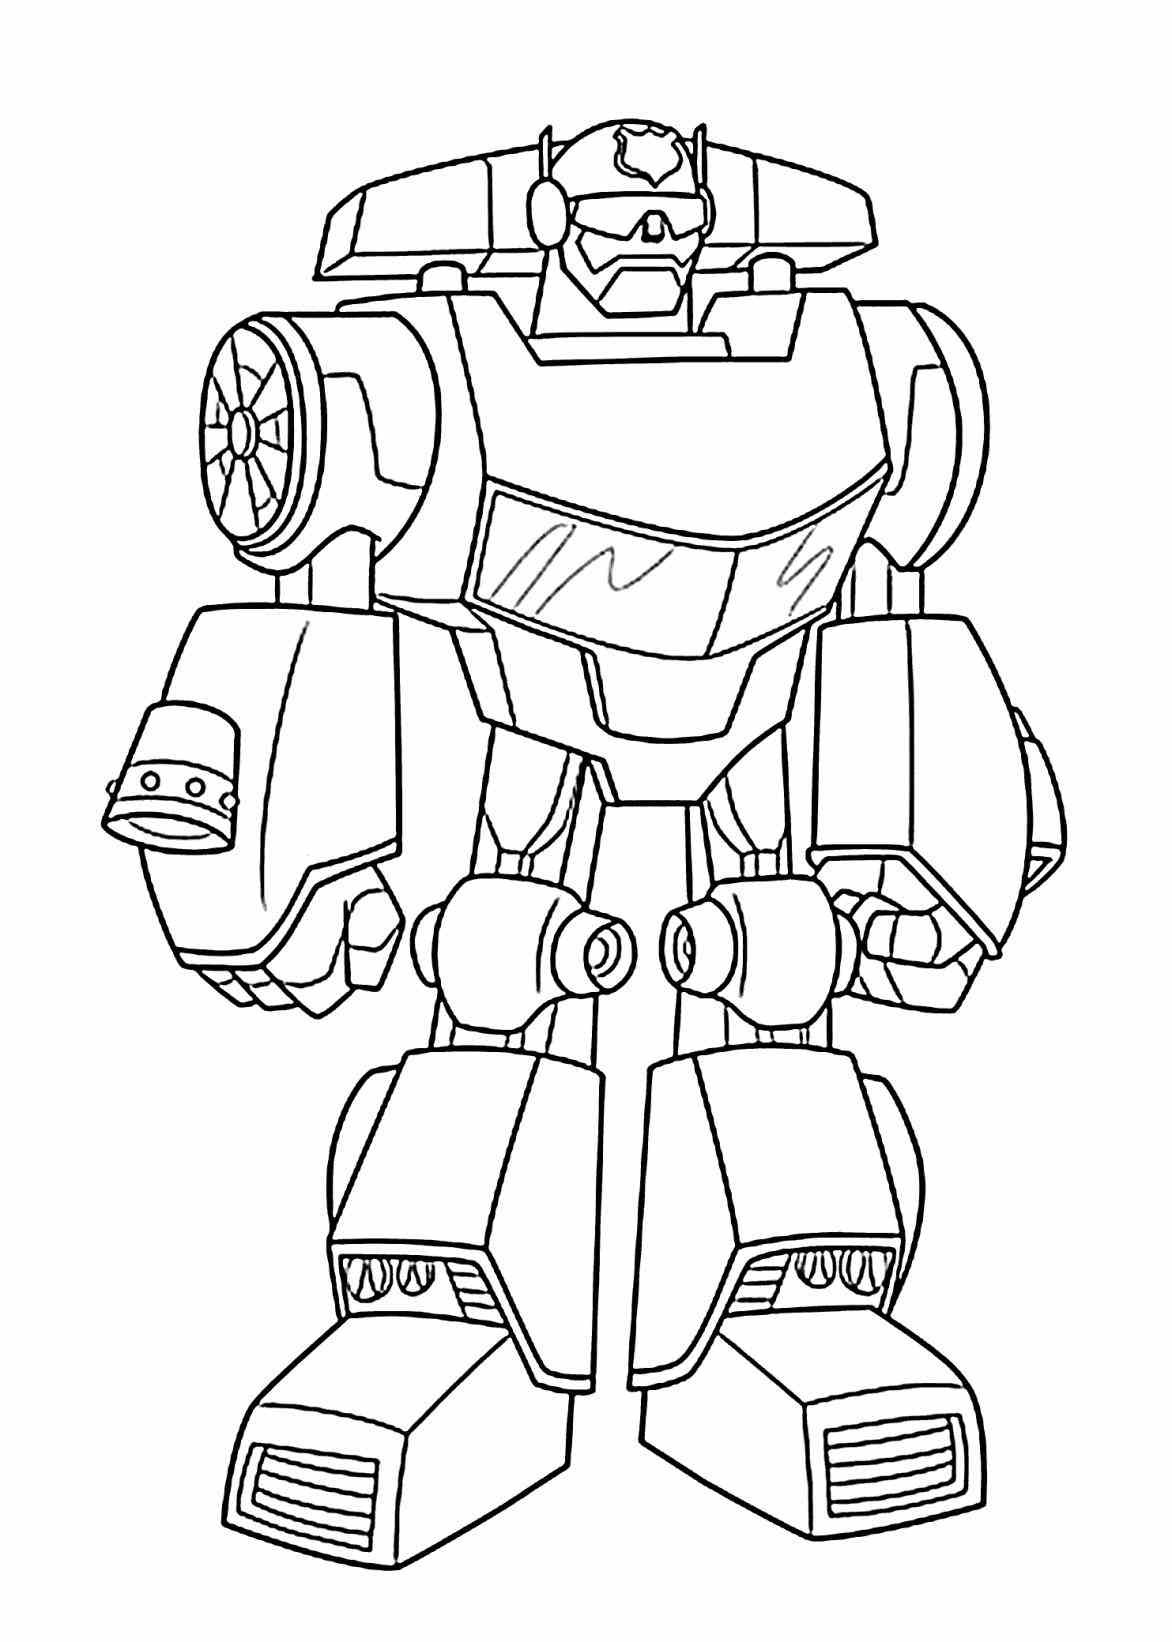 Best ideas about Transformers Free Coloring Pages . Save or Pin Bumble Bee Coloring Pages Transformers Bumblebee Page With Now.